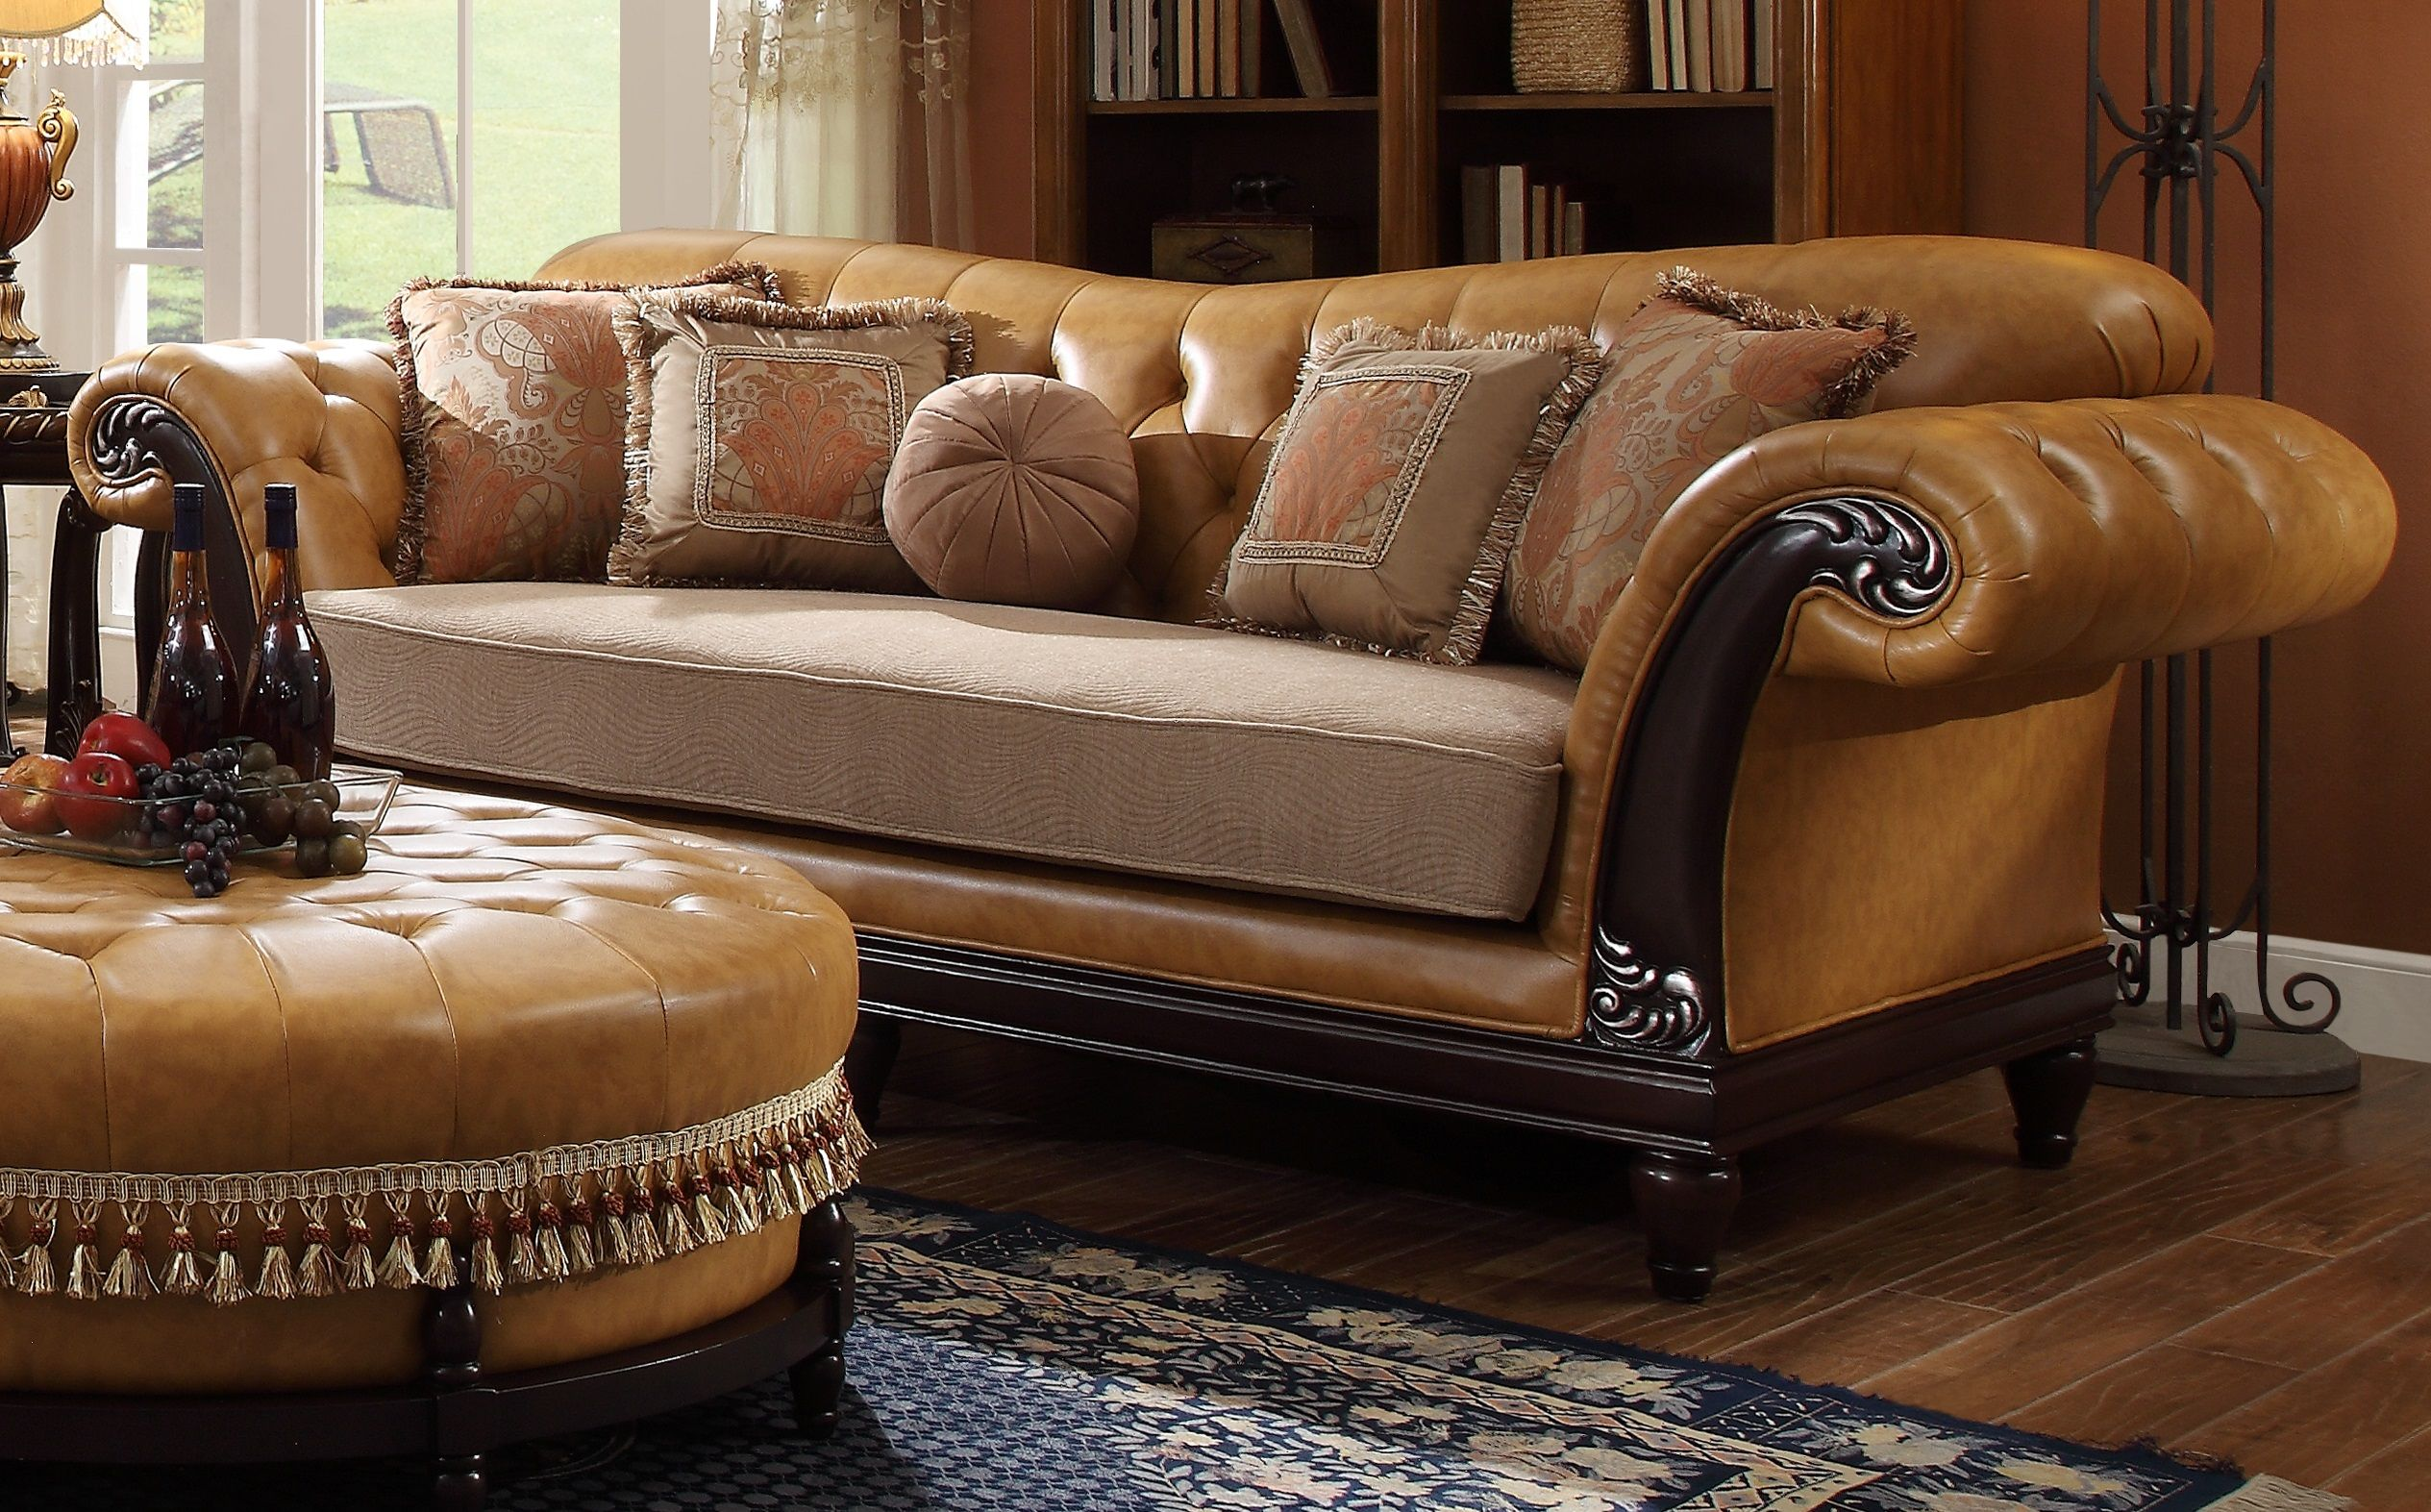 Leather Fabric Sofas Bonded Interior Designing